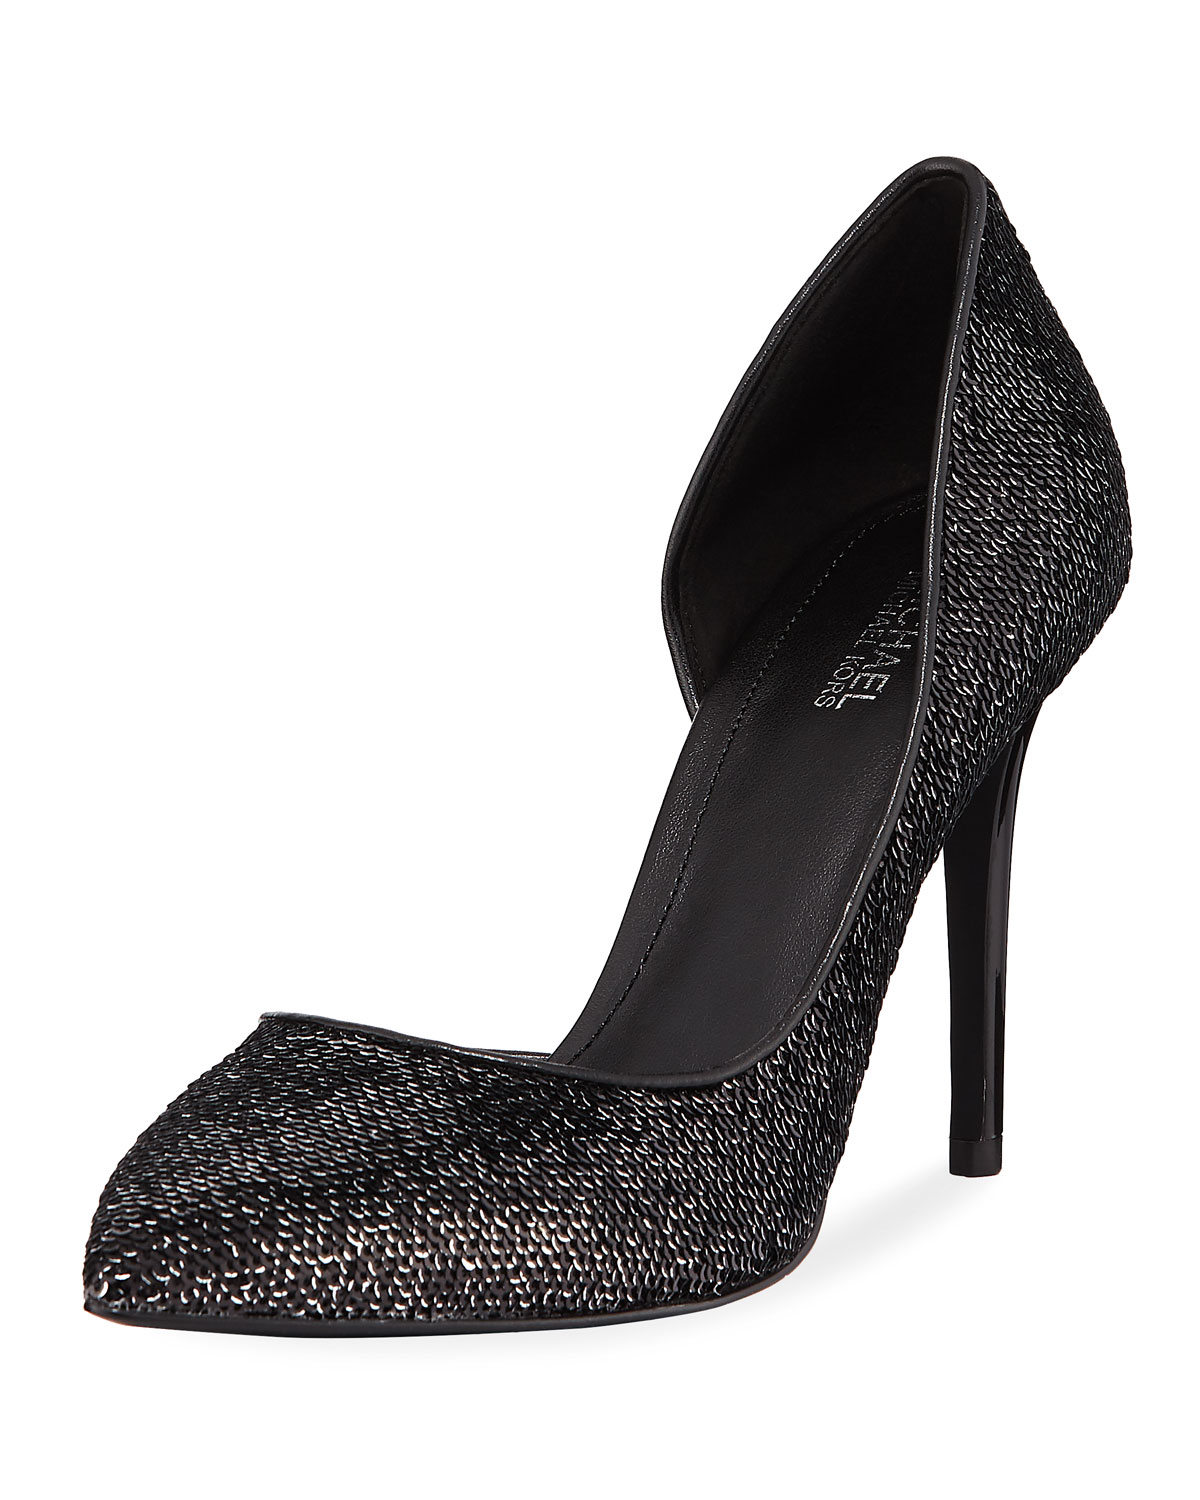 MICHAEL MICHAEL KORS CLAIRE SEQUINED LEATHER D'ORSAY PUMPS